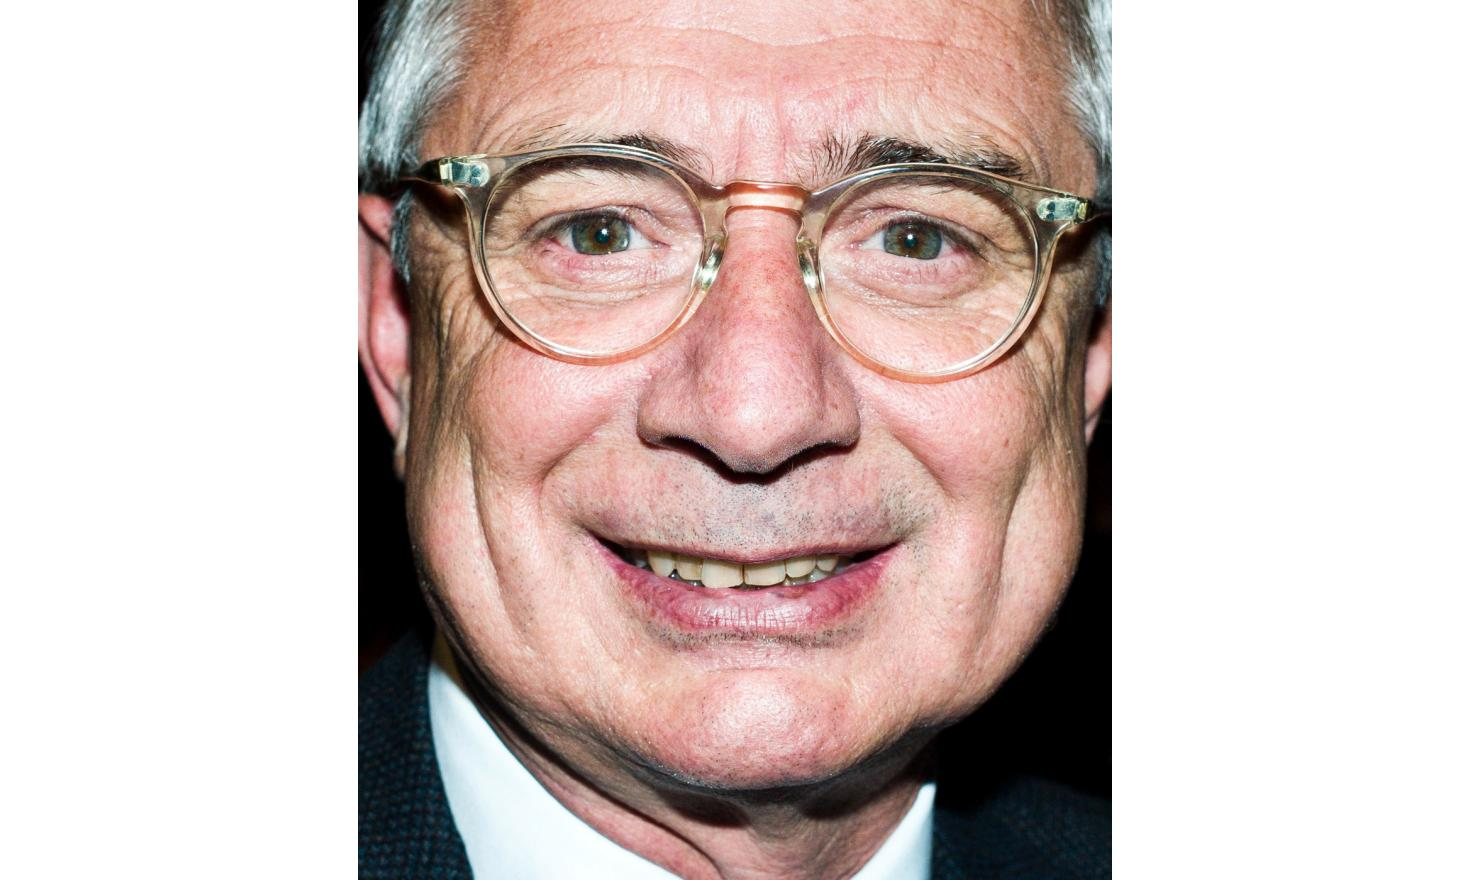 Claude Bartolone, member of the Socialist Party, president of the National Assembly since 2012, deputy of Seine-Saint-Denis in 1981, minister... Parisian meeting of Manuel Valls at the Trianon in Paris during the first round of the PS primaries.